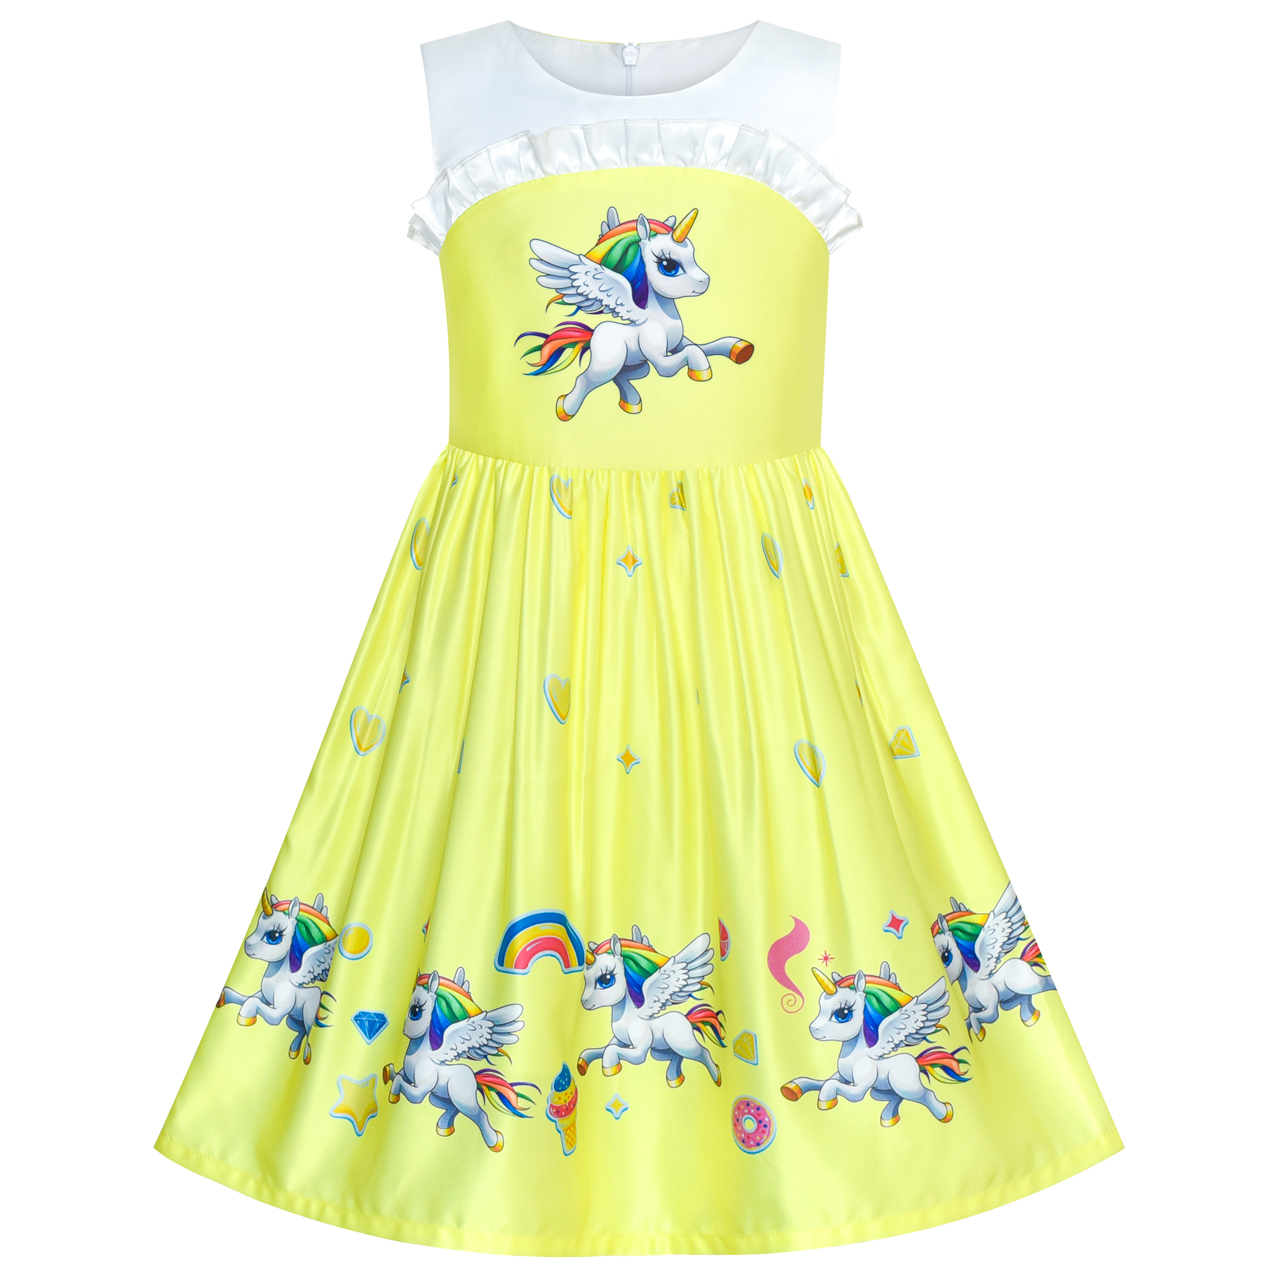 Girls Dress Yellow Unicorn Birthday Party 2019 Summer Princess Wedding Dresses Kids Clothes Pageant Sundress Vestidos sunny fashion girls dress birthday cupcake polka dot birthday princess 2018 summer wedding party dresses kids clothes size 3 8